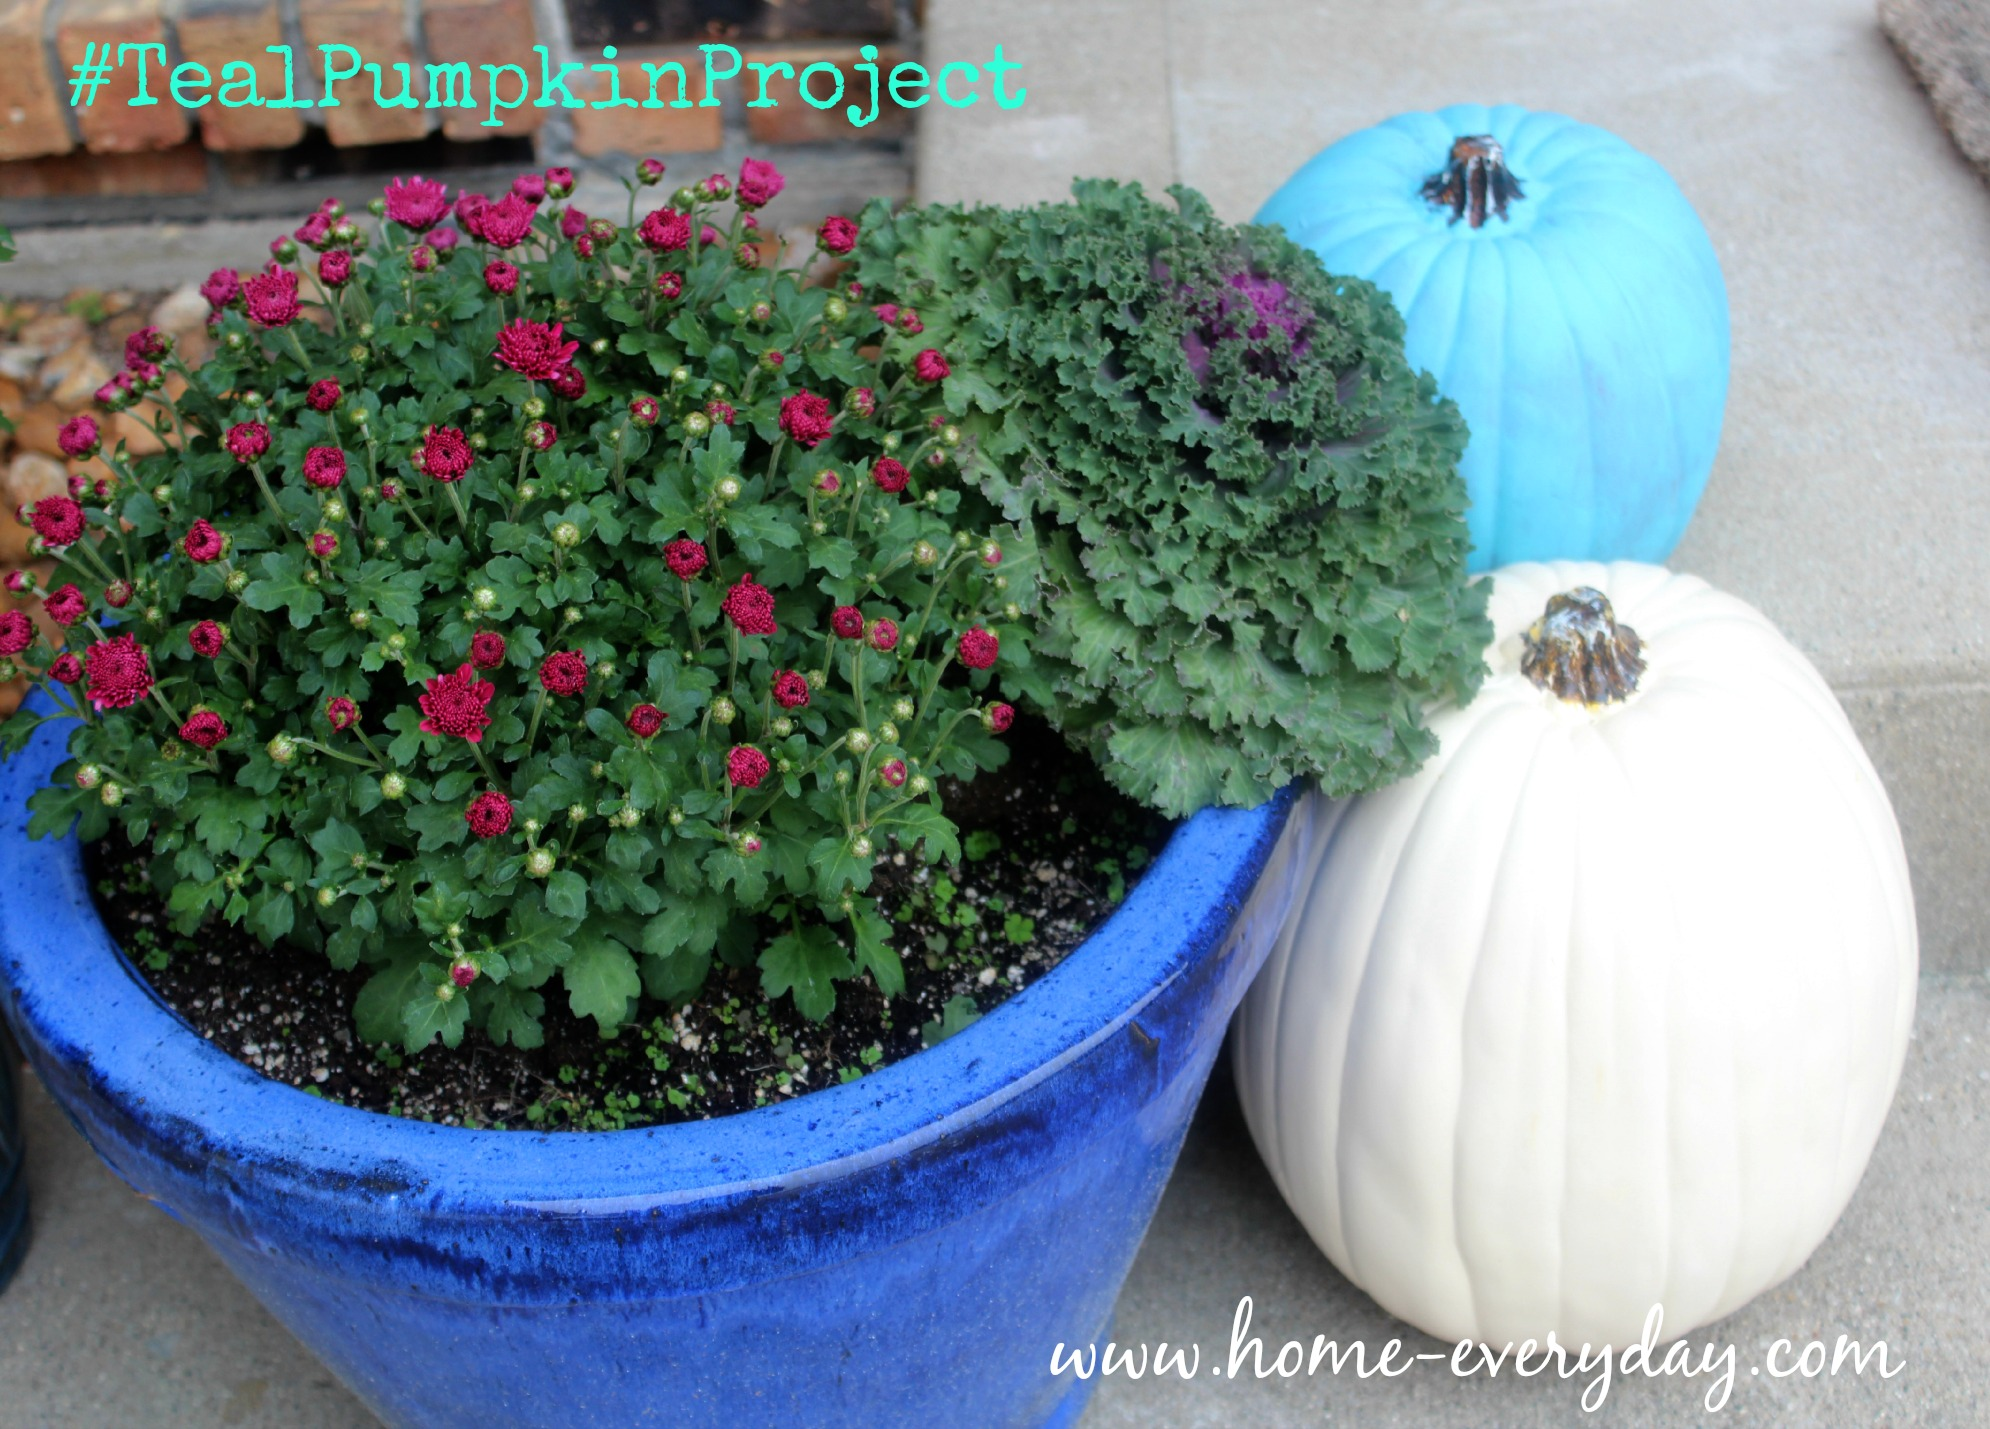 Teal Pumpkin Project 15-3